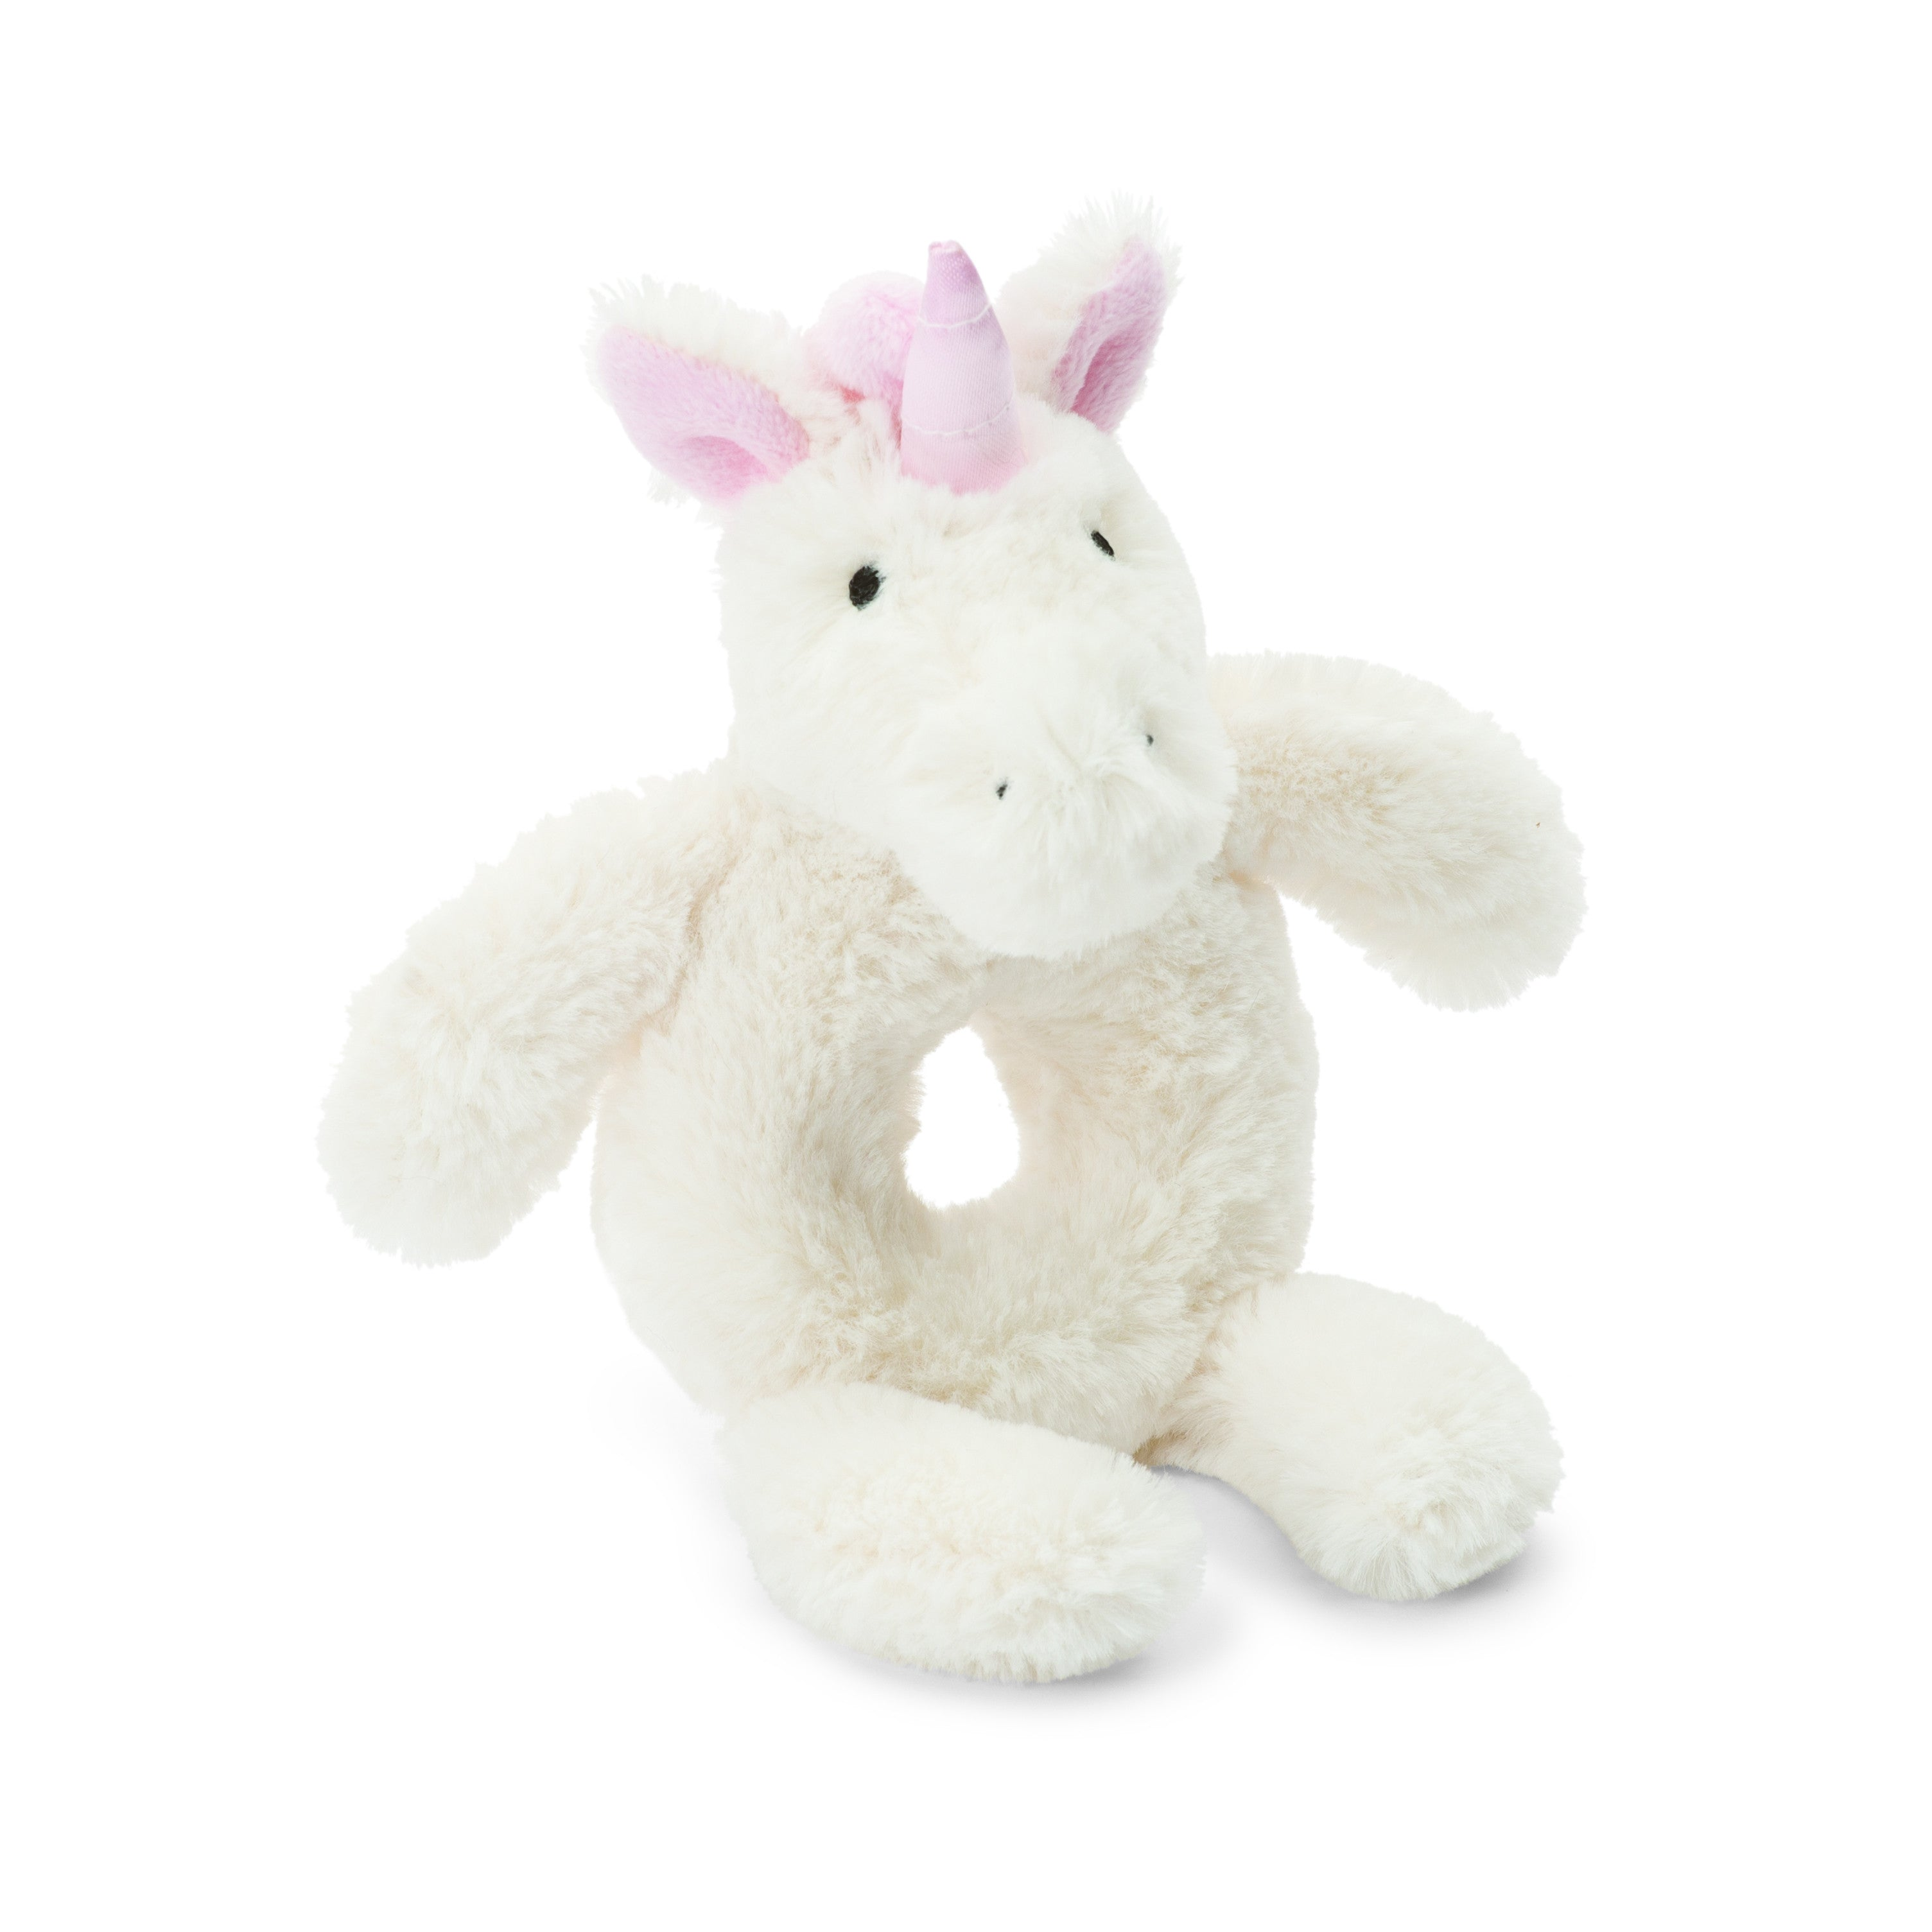 6 inches Jellycat Bashful Dragon Soft Plush Baby Toy Ring Rattle